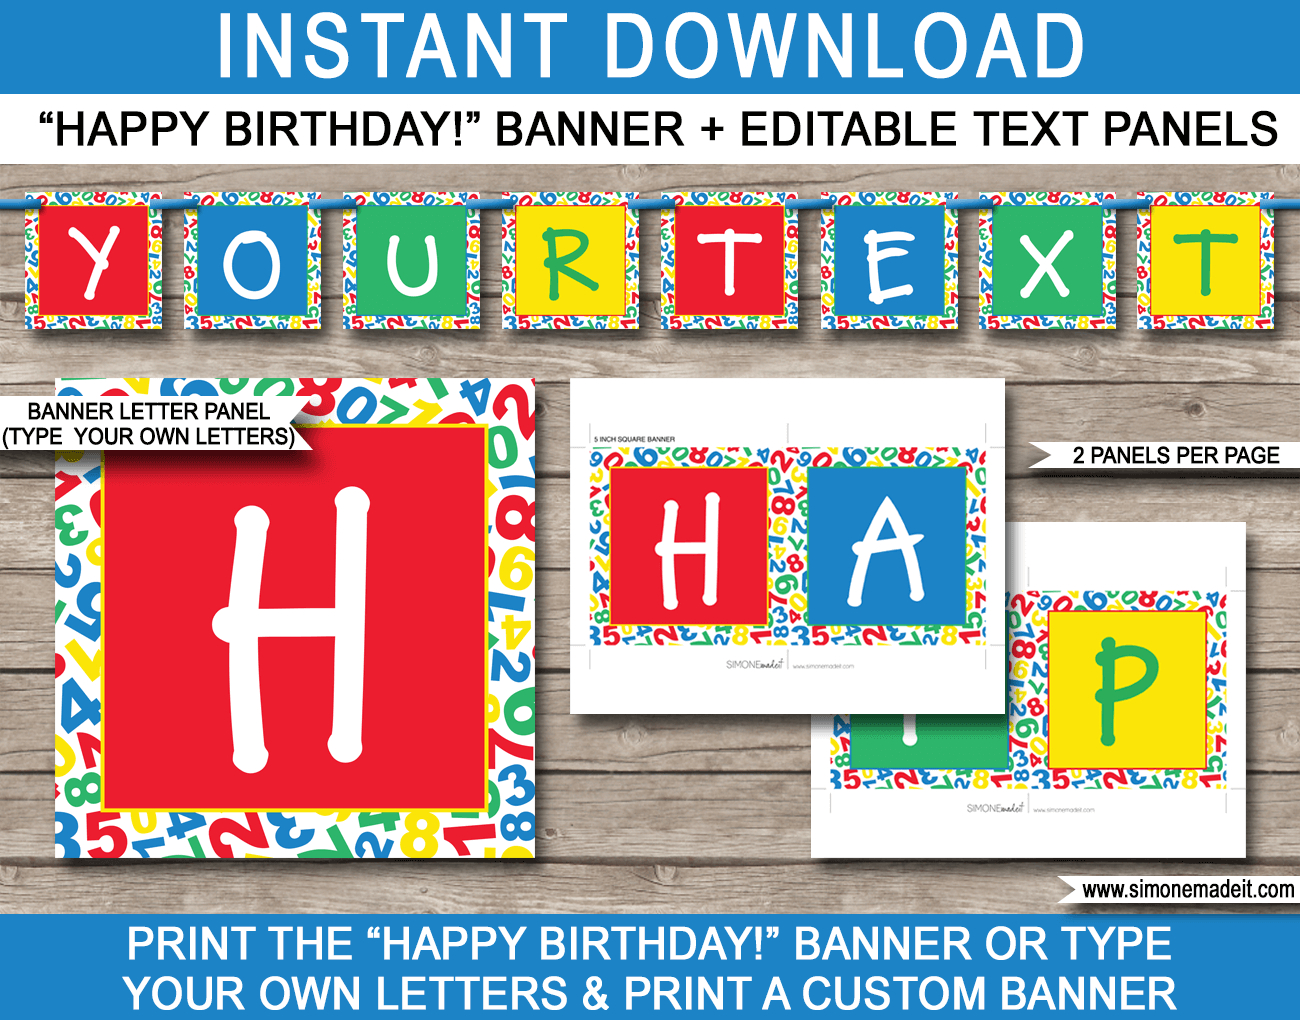 Sesame Street Party Banner Template | Happy Birthday Bunting - Simone Made It Free Printables